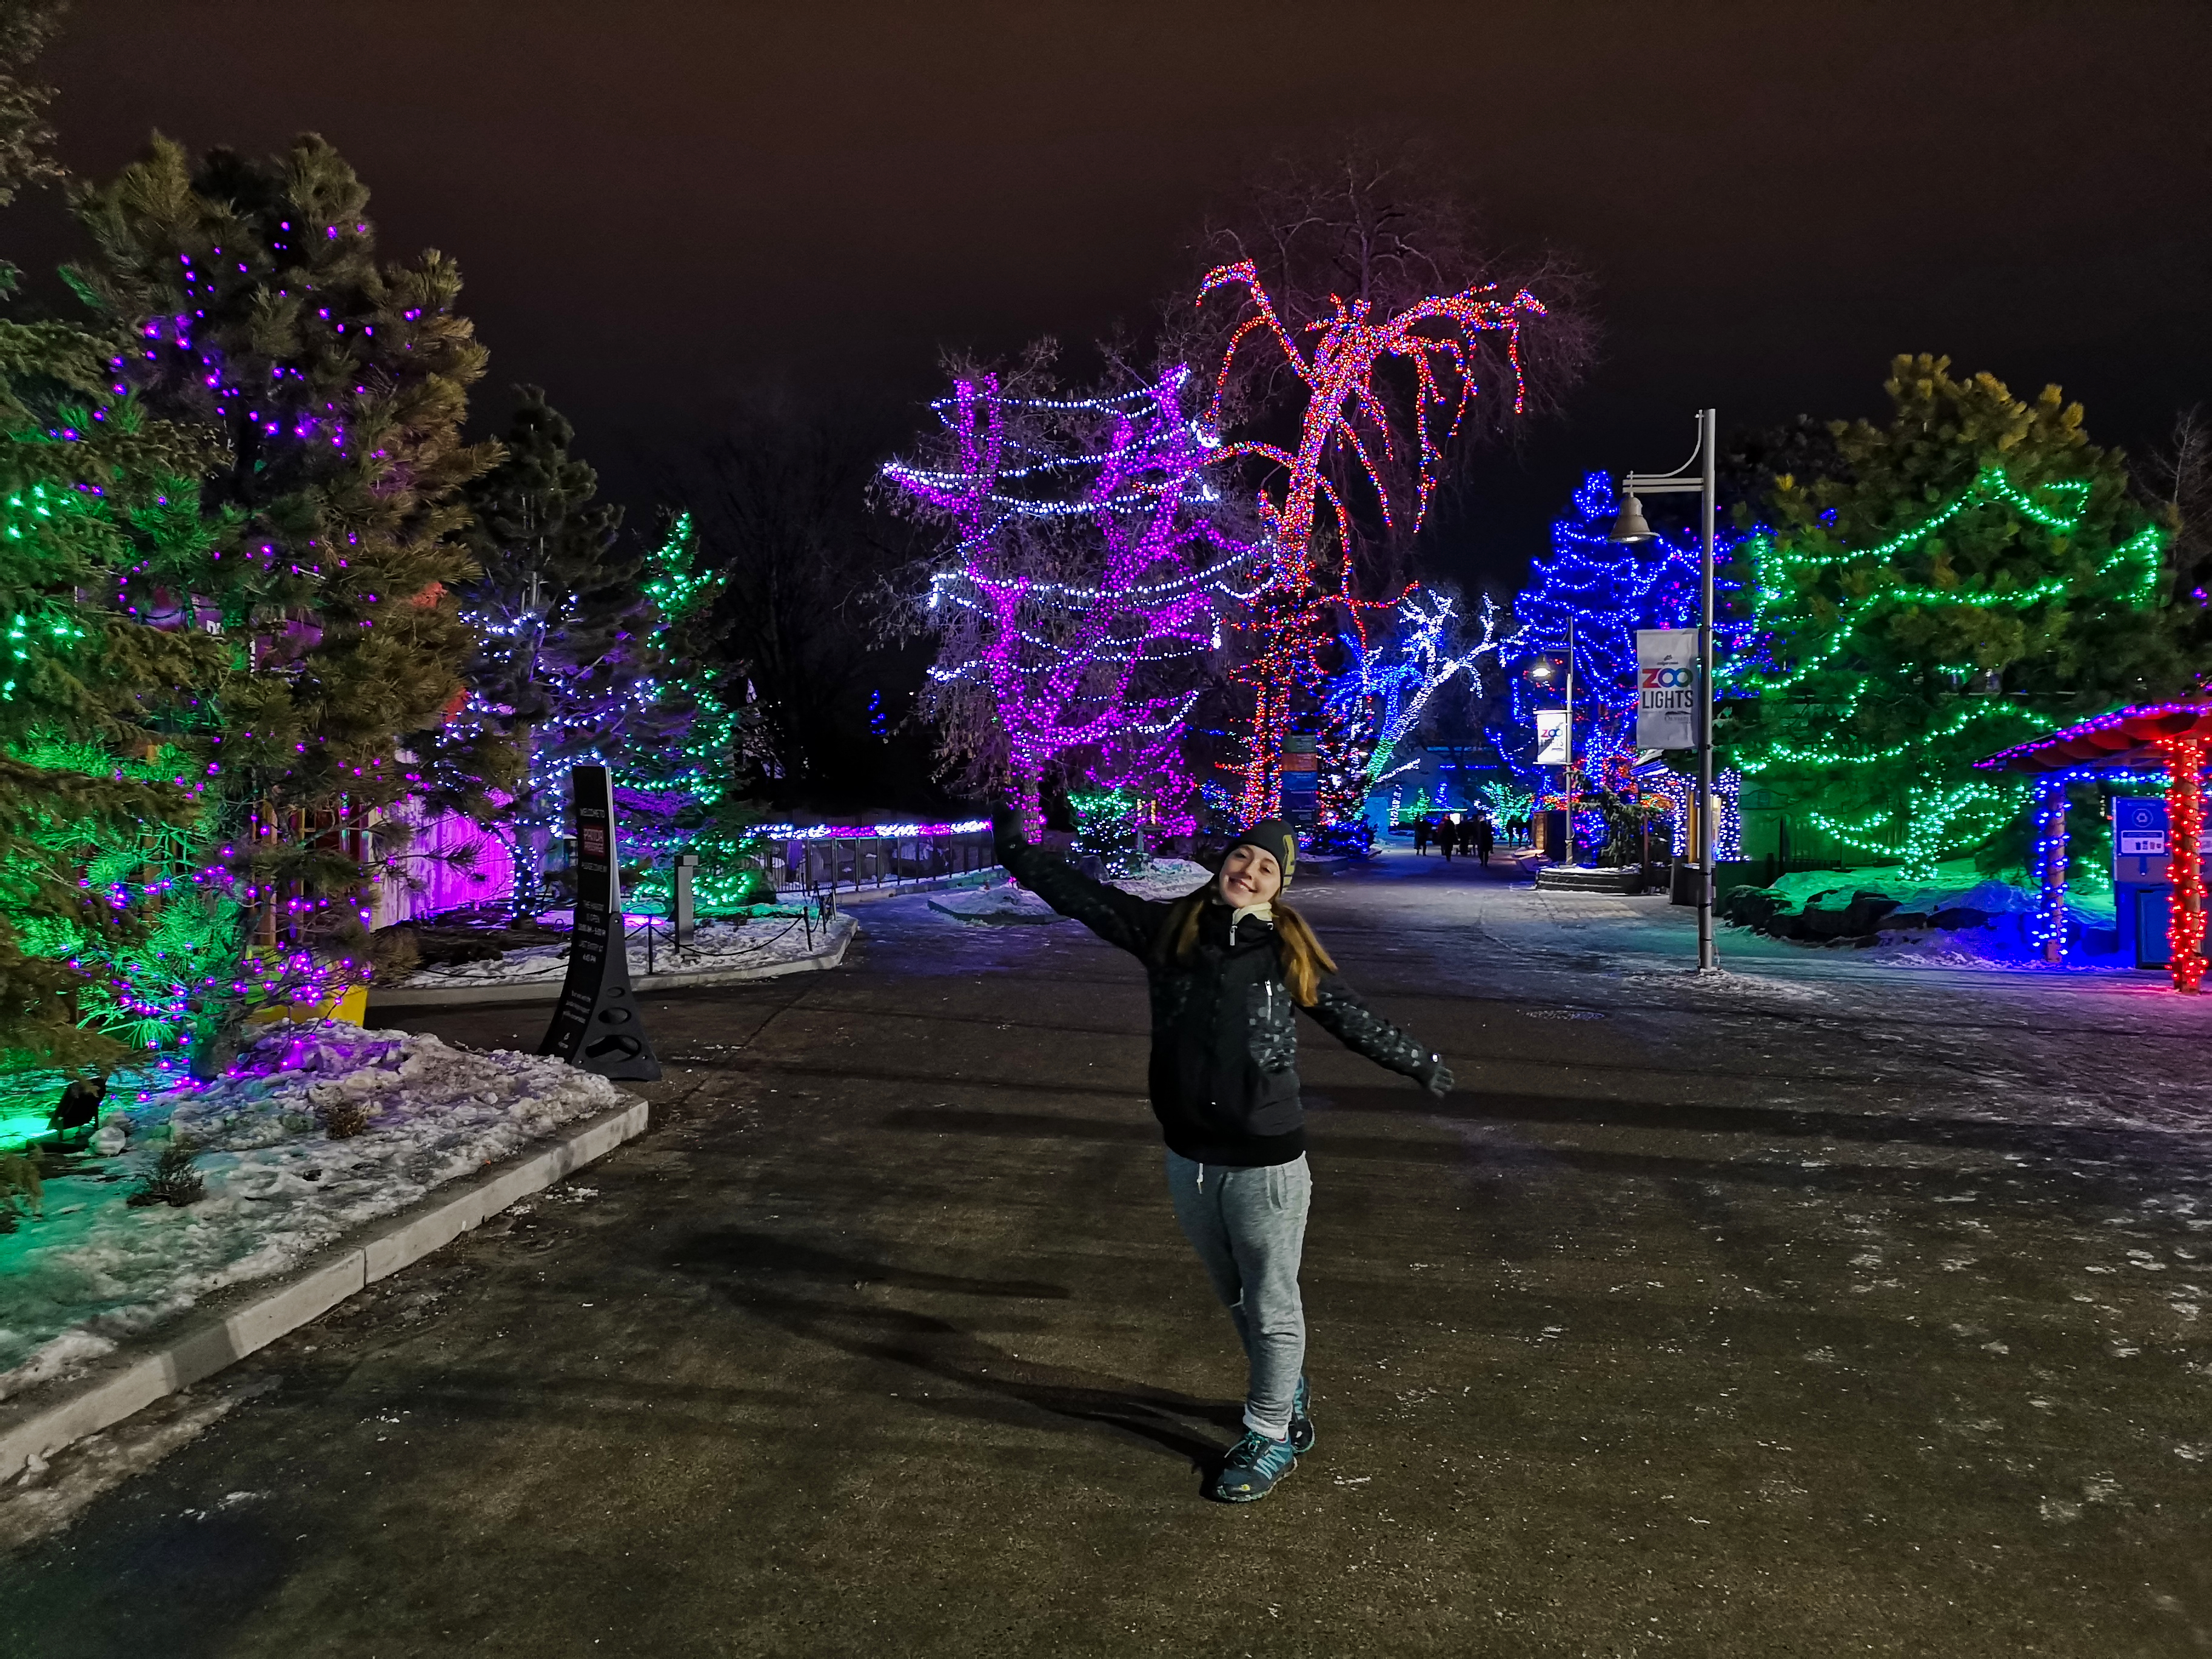 Zoolights in Calgary